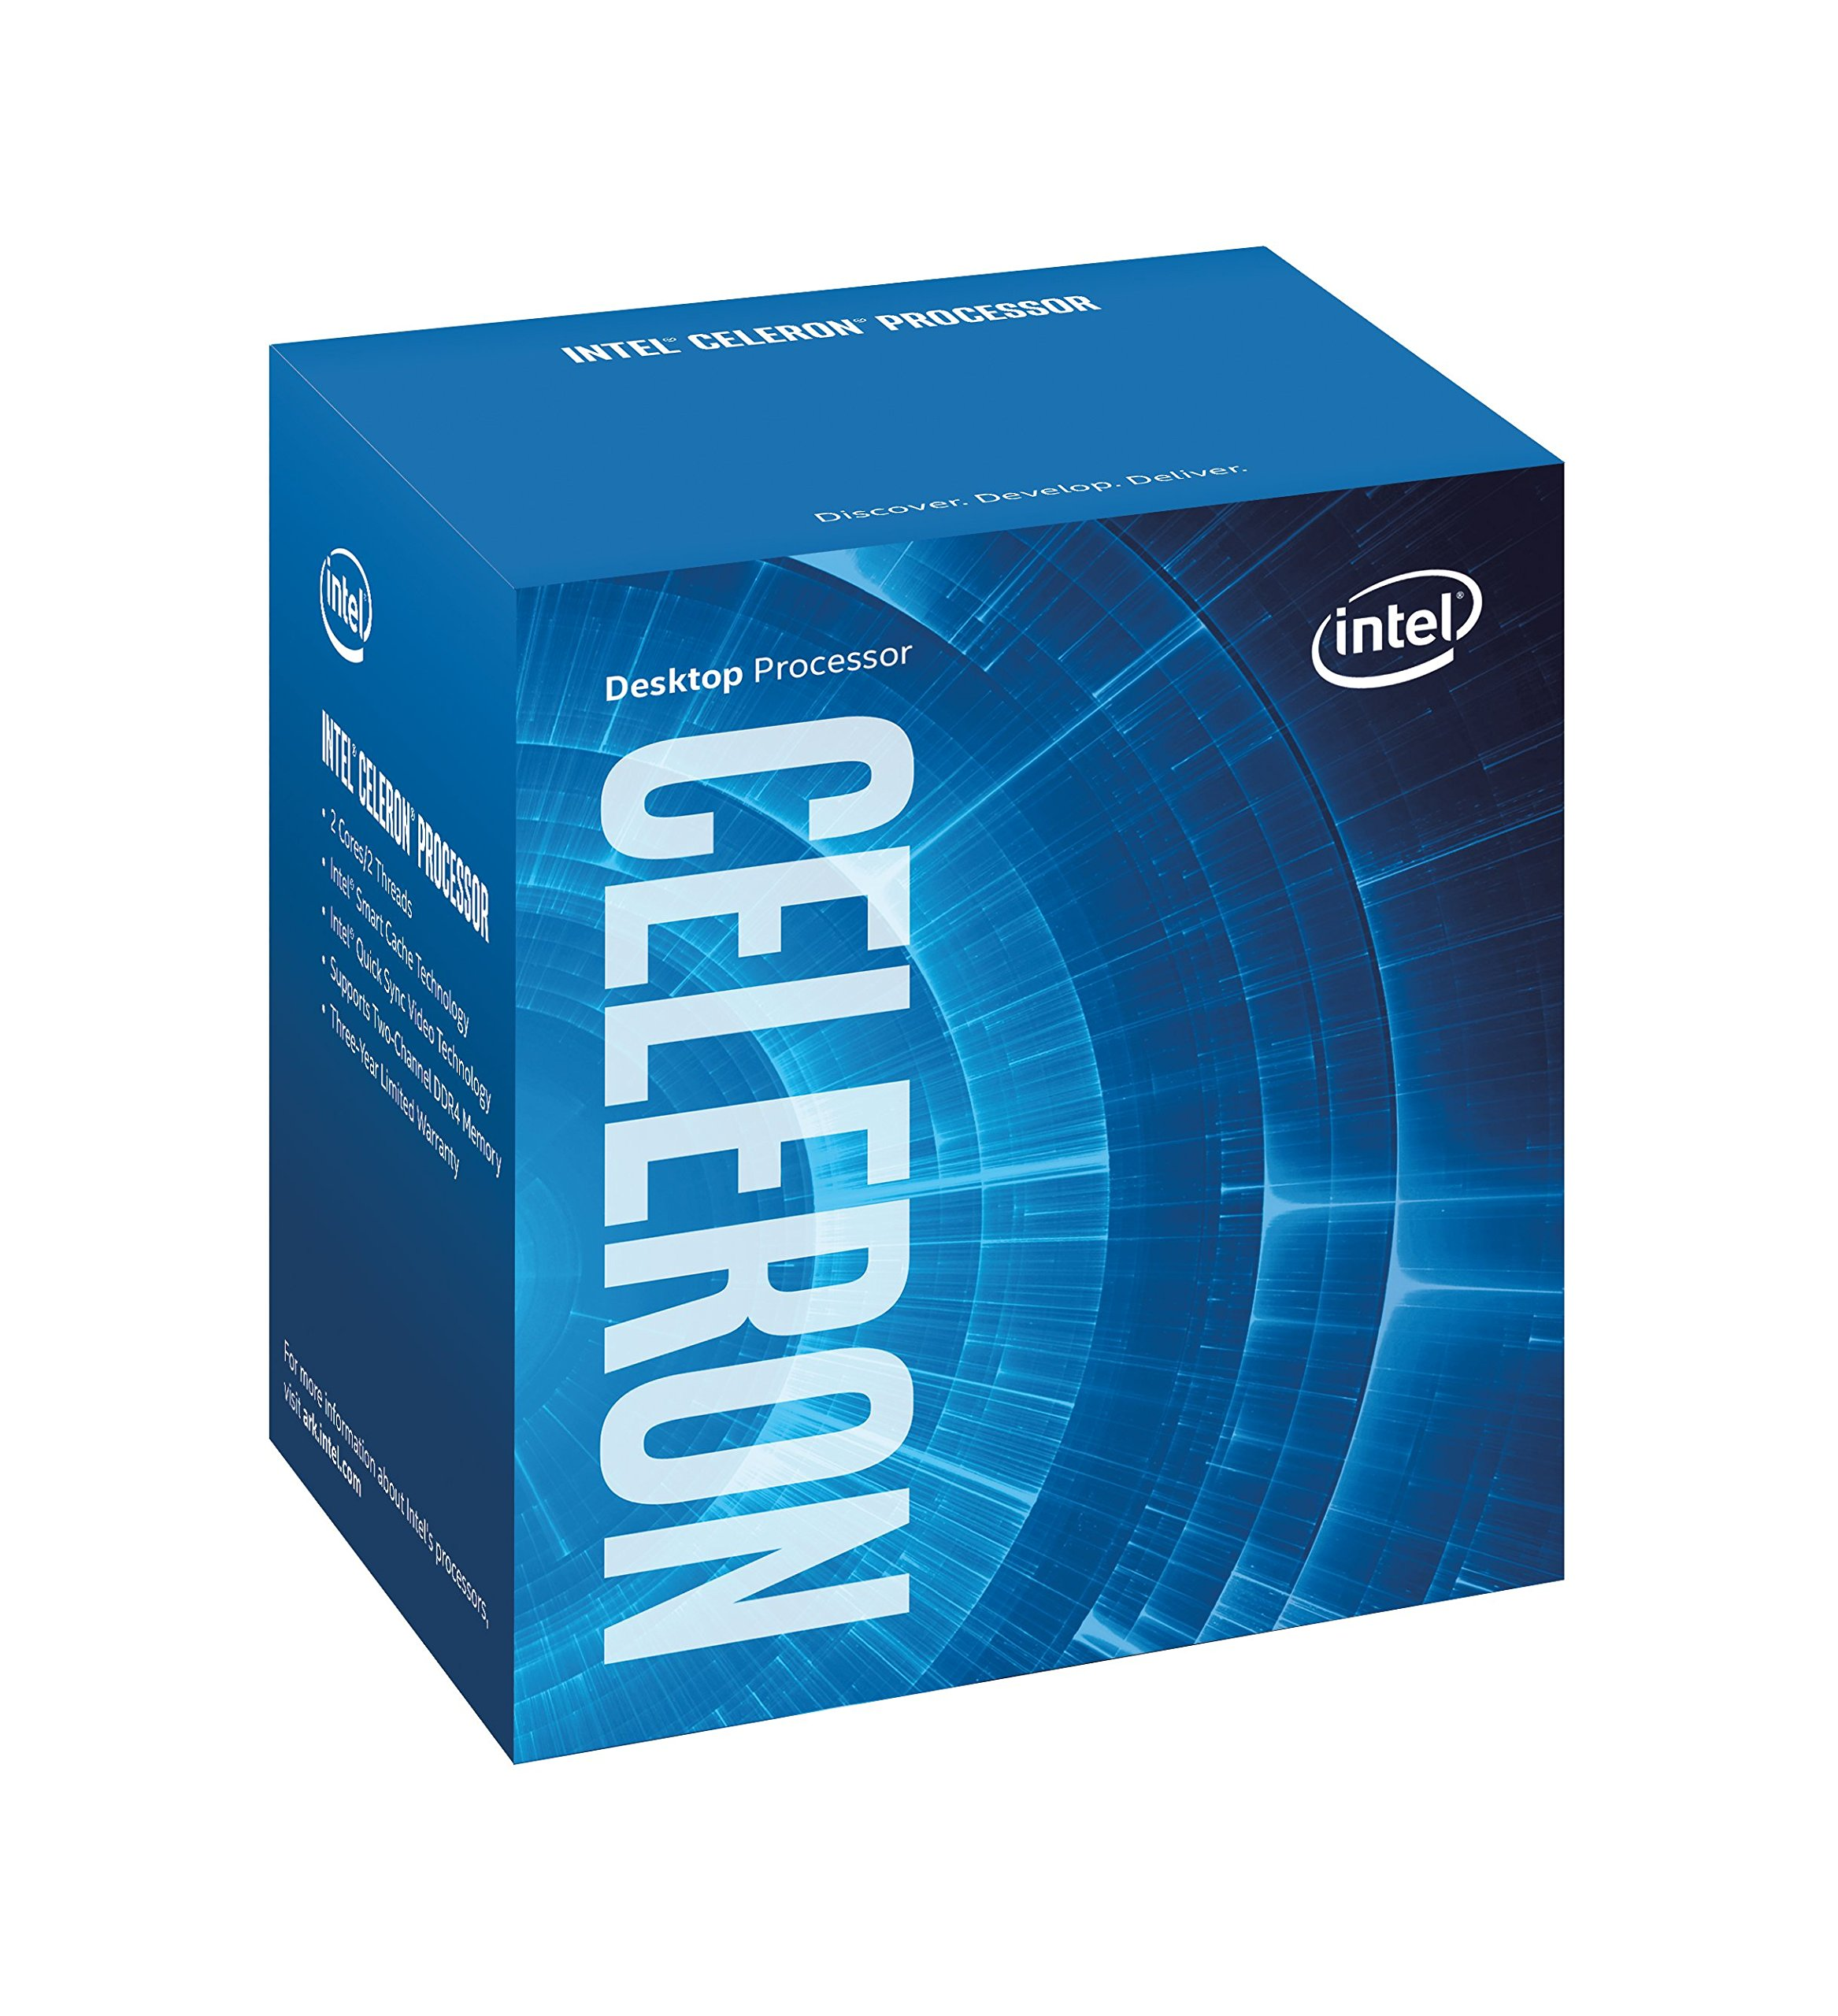 Intel BX80677G3950 7th Gen Celeron Desktop Processors by Intel